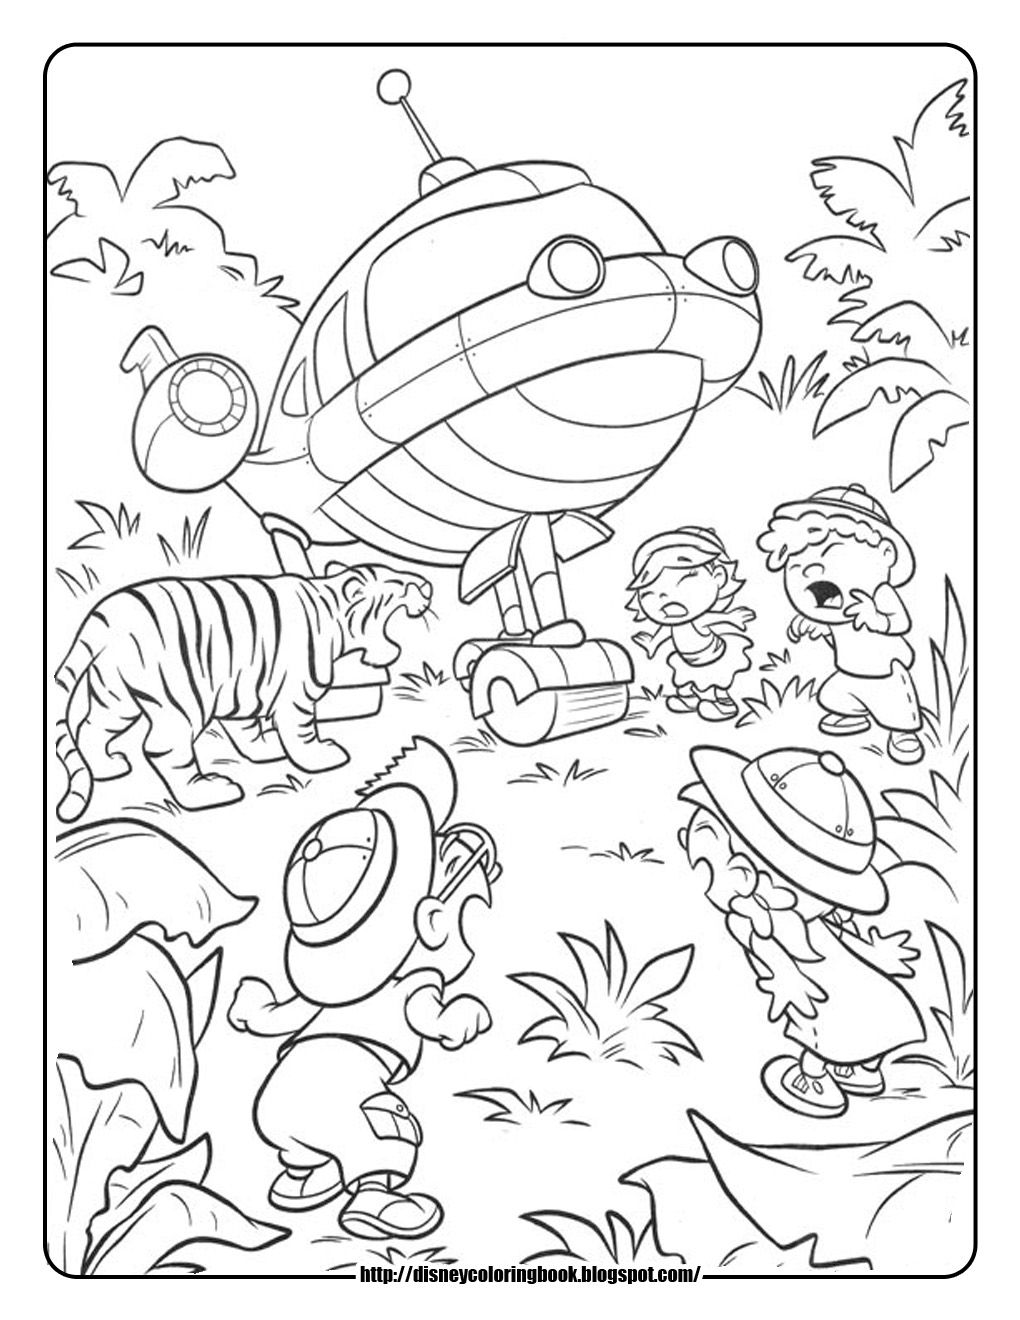 Little einsteins coloring games online - Download Or Print This Amazing Coloring Page Cartoon Little Einsteins Coloring Pages To Print Picture